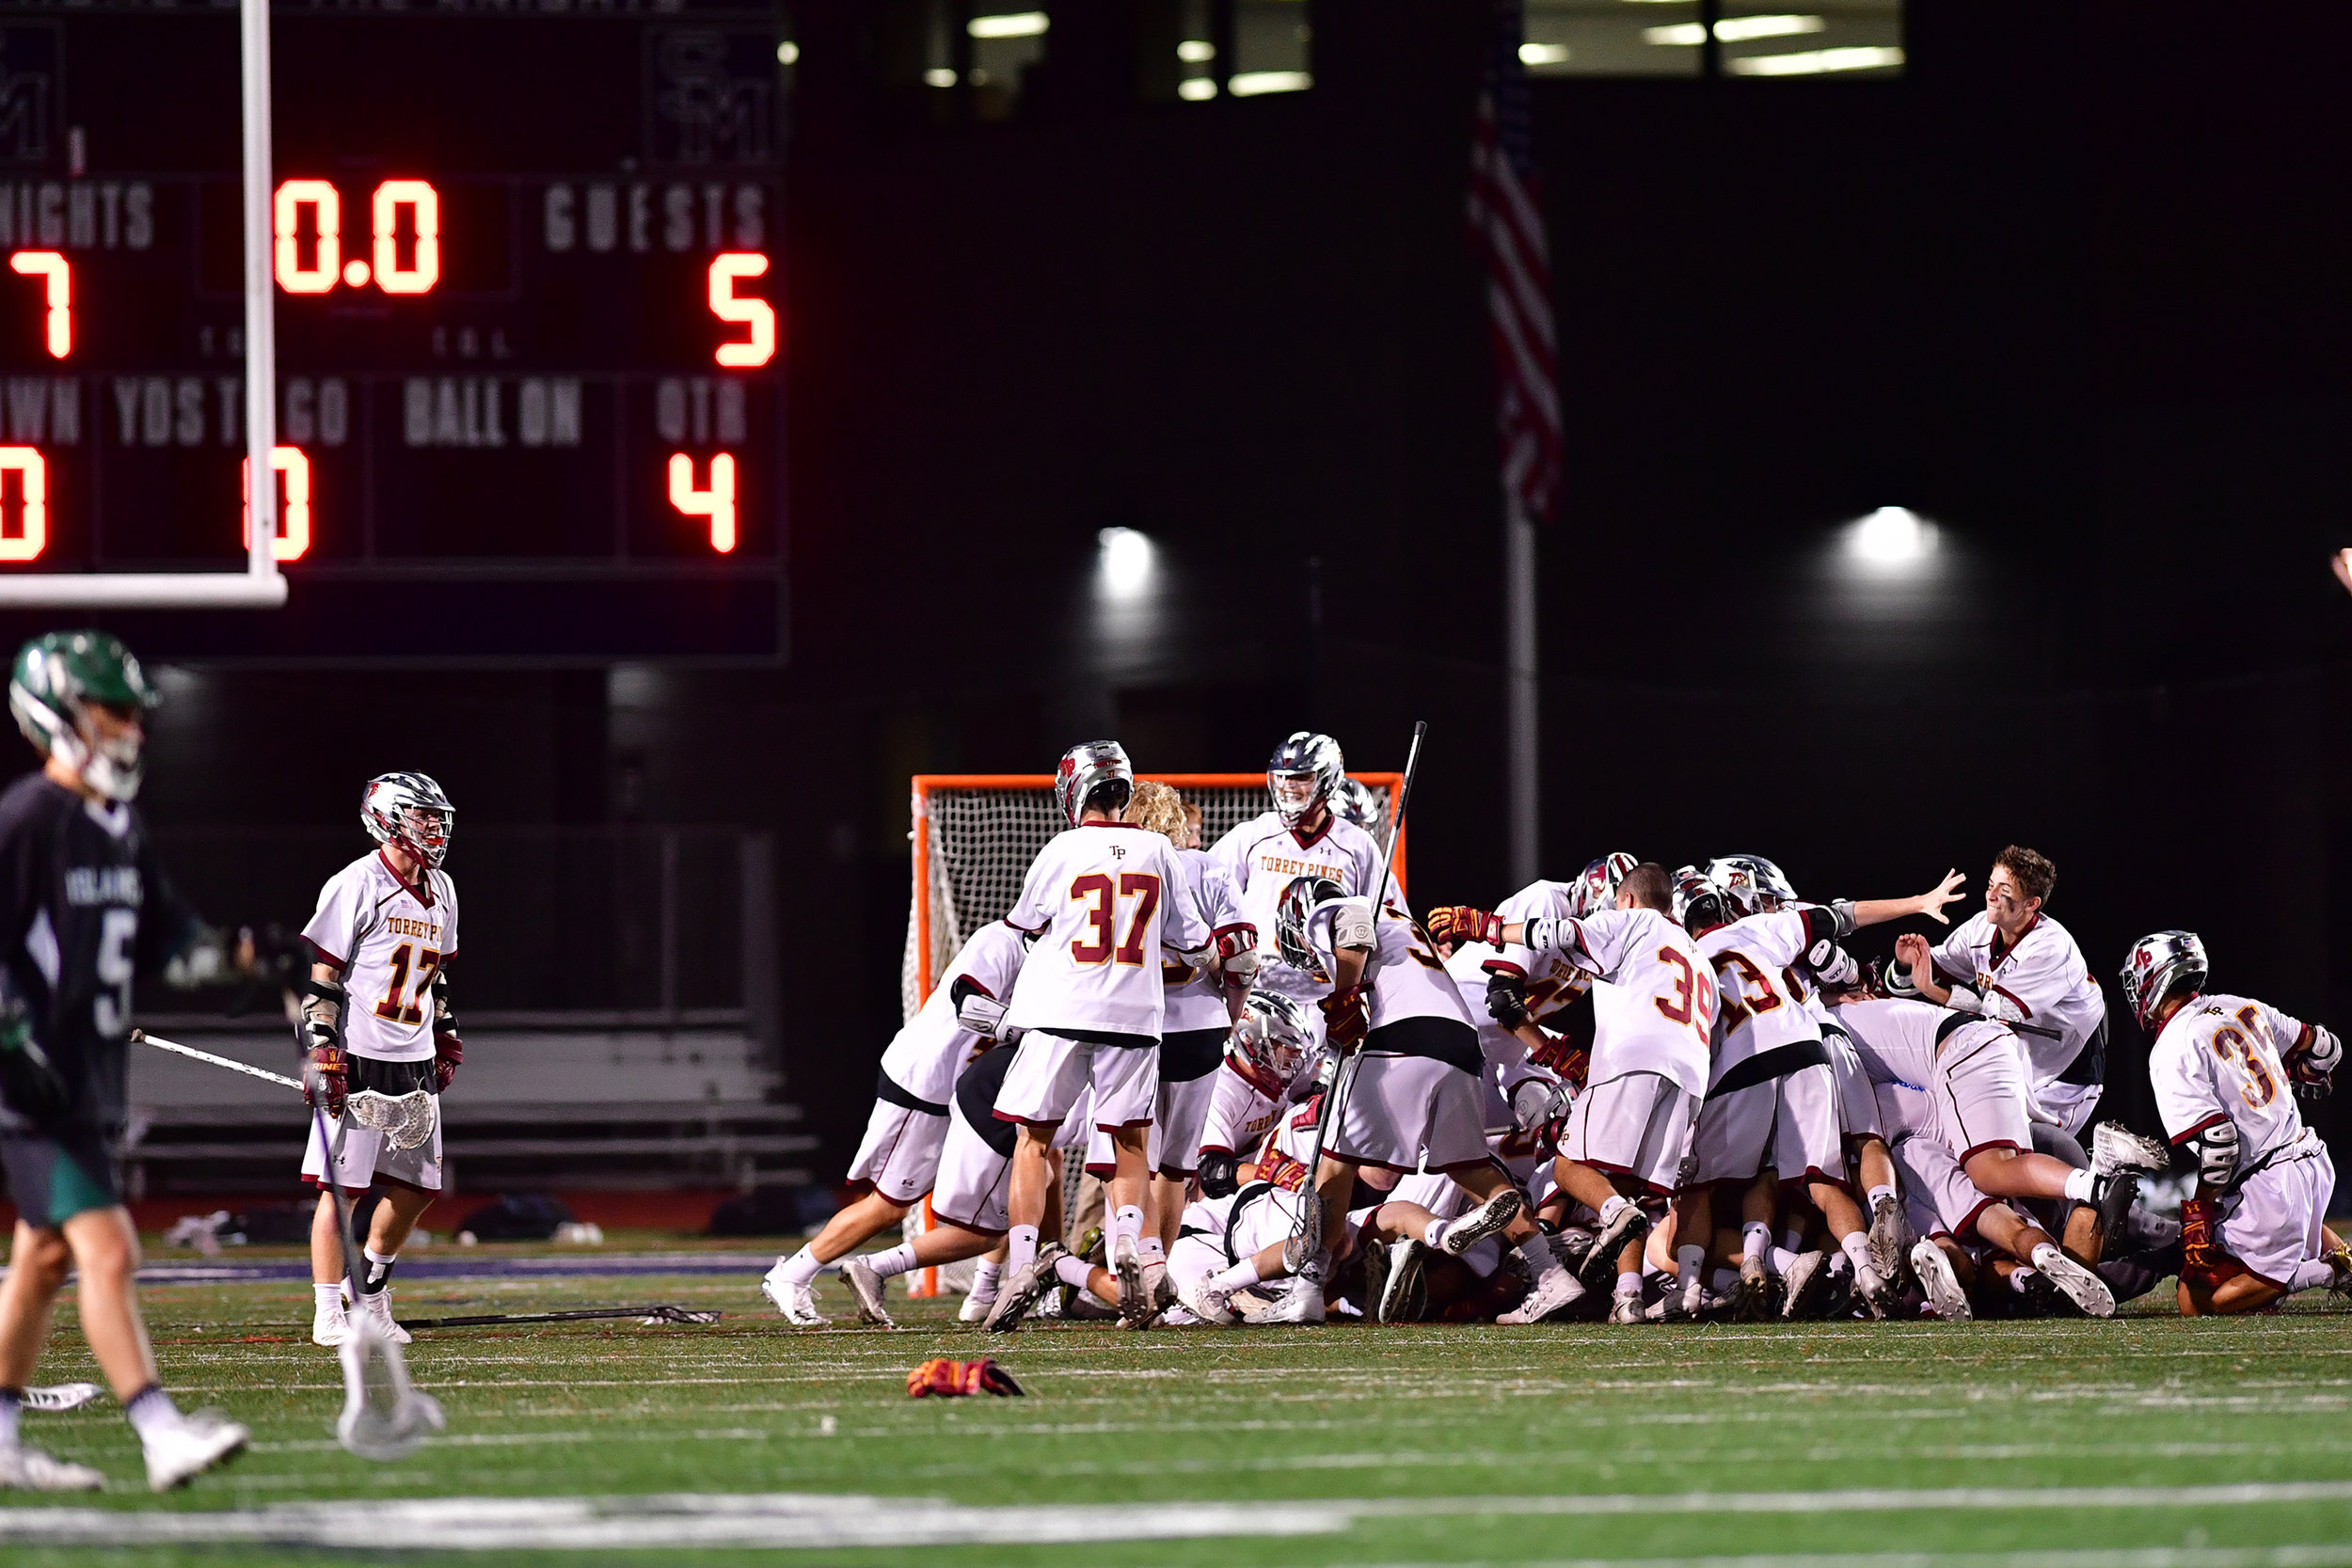 Open Division boys lacrosse: Torrey rallies to win title